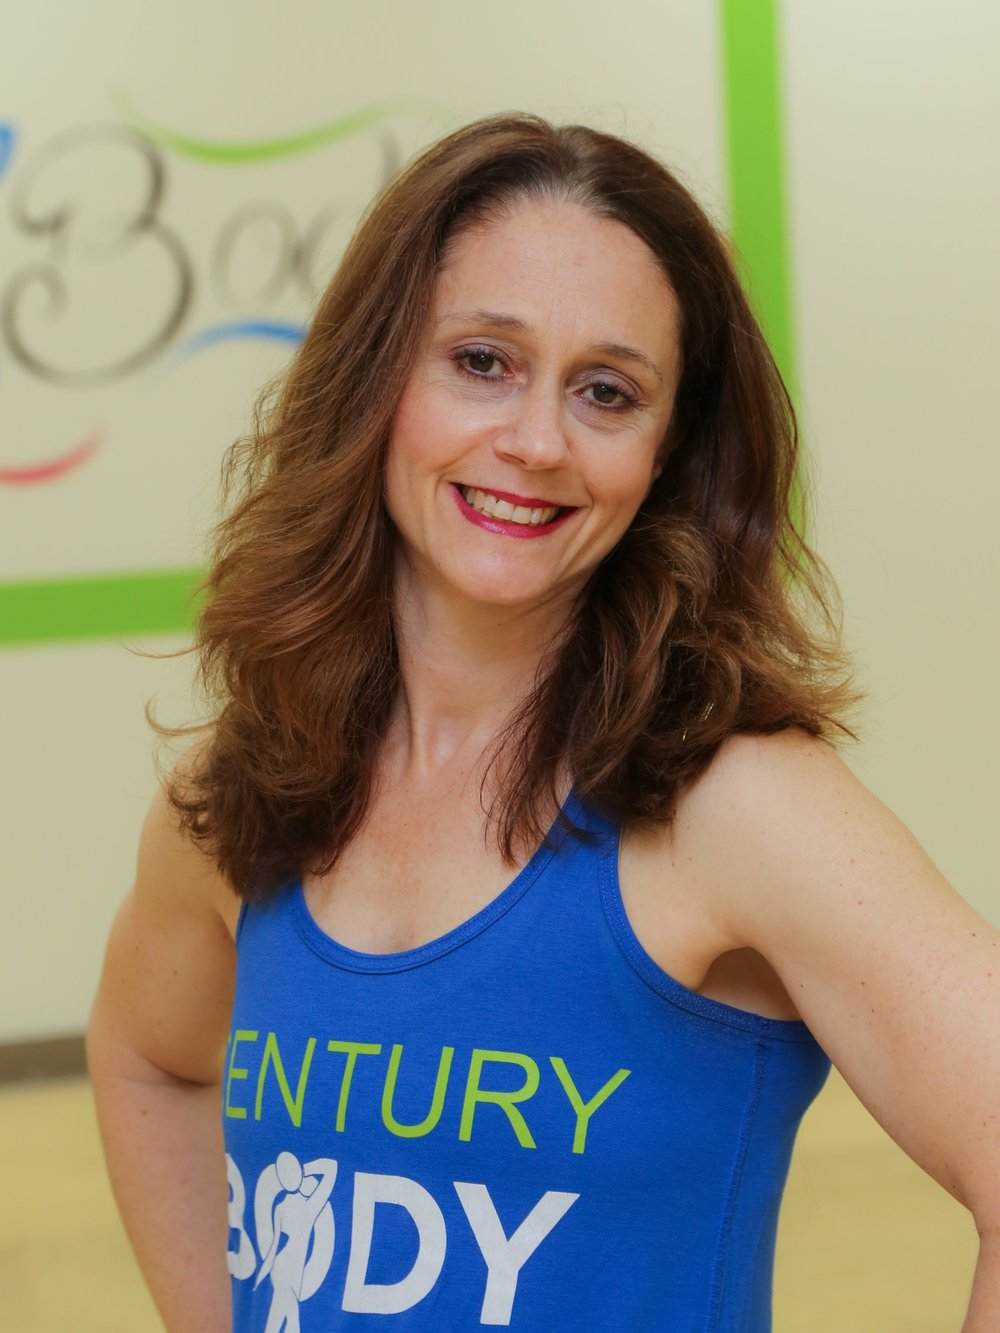 Jennifer Rubenkoenig   I'm the owner and lead Zumba® Fitness instructor at Century Body. I've been passionate about helping those interested in living a healthy lifestyle, spending — years as a Weight Watchers® coach and eight years as a Zumba® Fitness instructor. At Century Body, the goal is to live in our bodies until we are 100! Zumba® Fitness is my preferred form of cardio because it makes me feel free and happy — no matter how bad a day I might have. As soon as the music starts, I forget all my worries! As an instructor, I love seeing how students move differently to songs, how they make it their own, how they smile and laugh and sweat all at once. I can't wait to meet you!